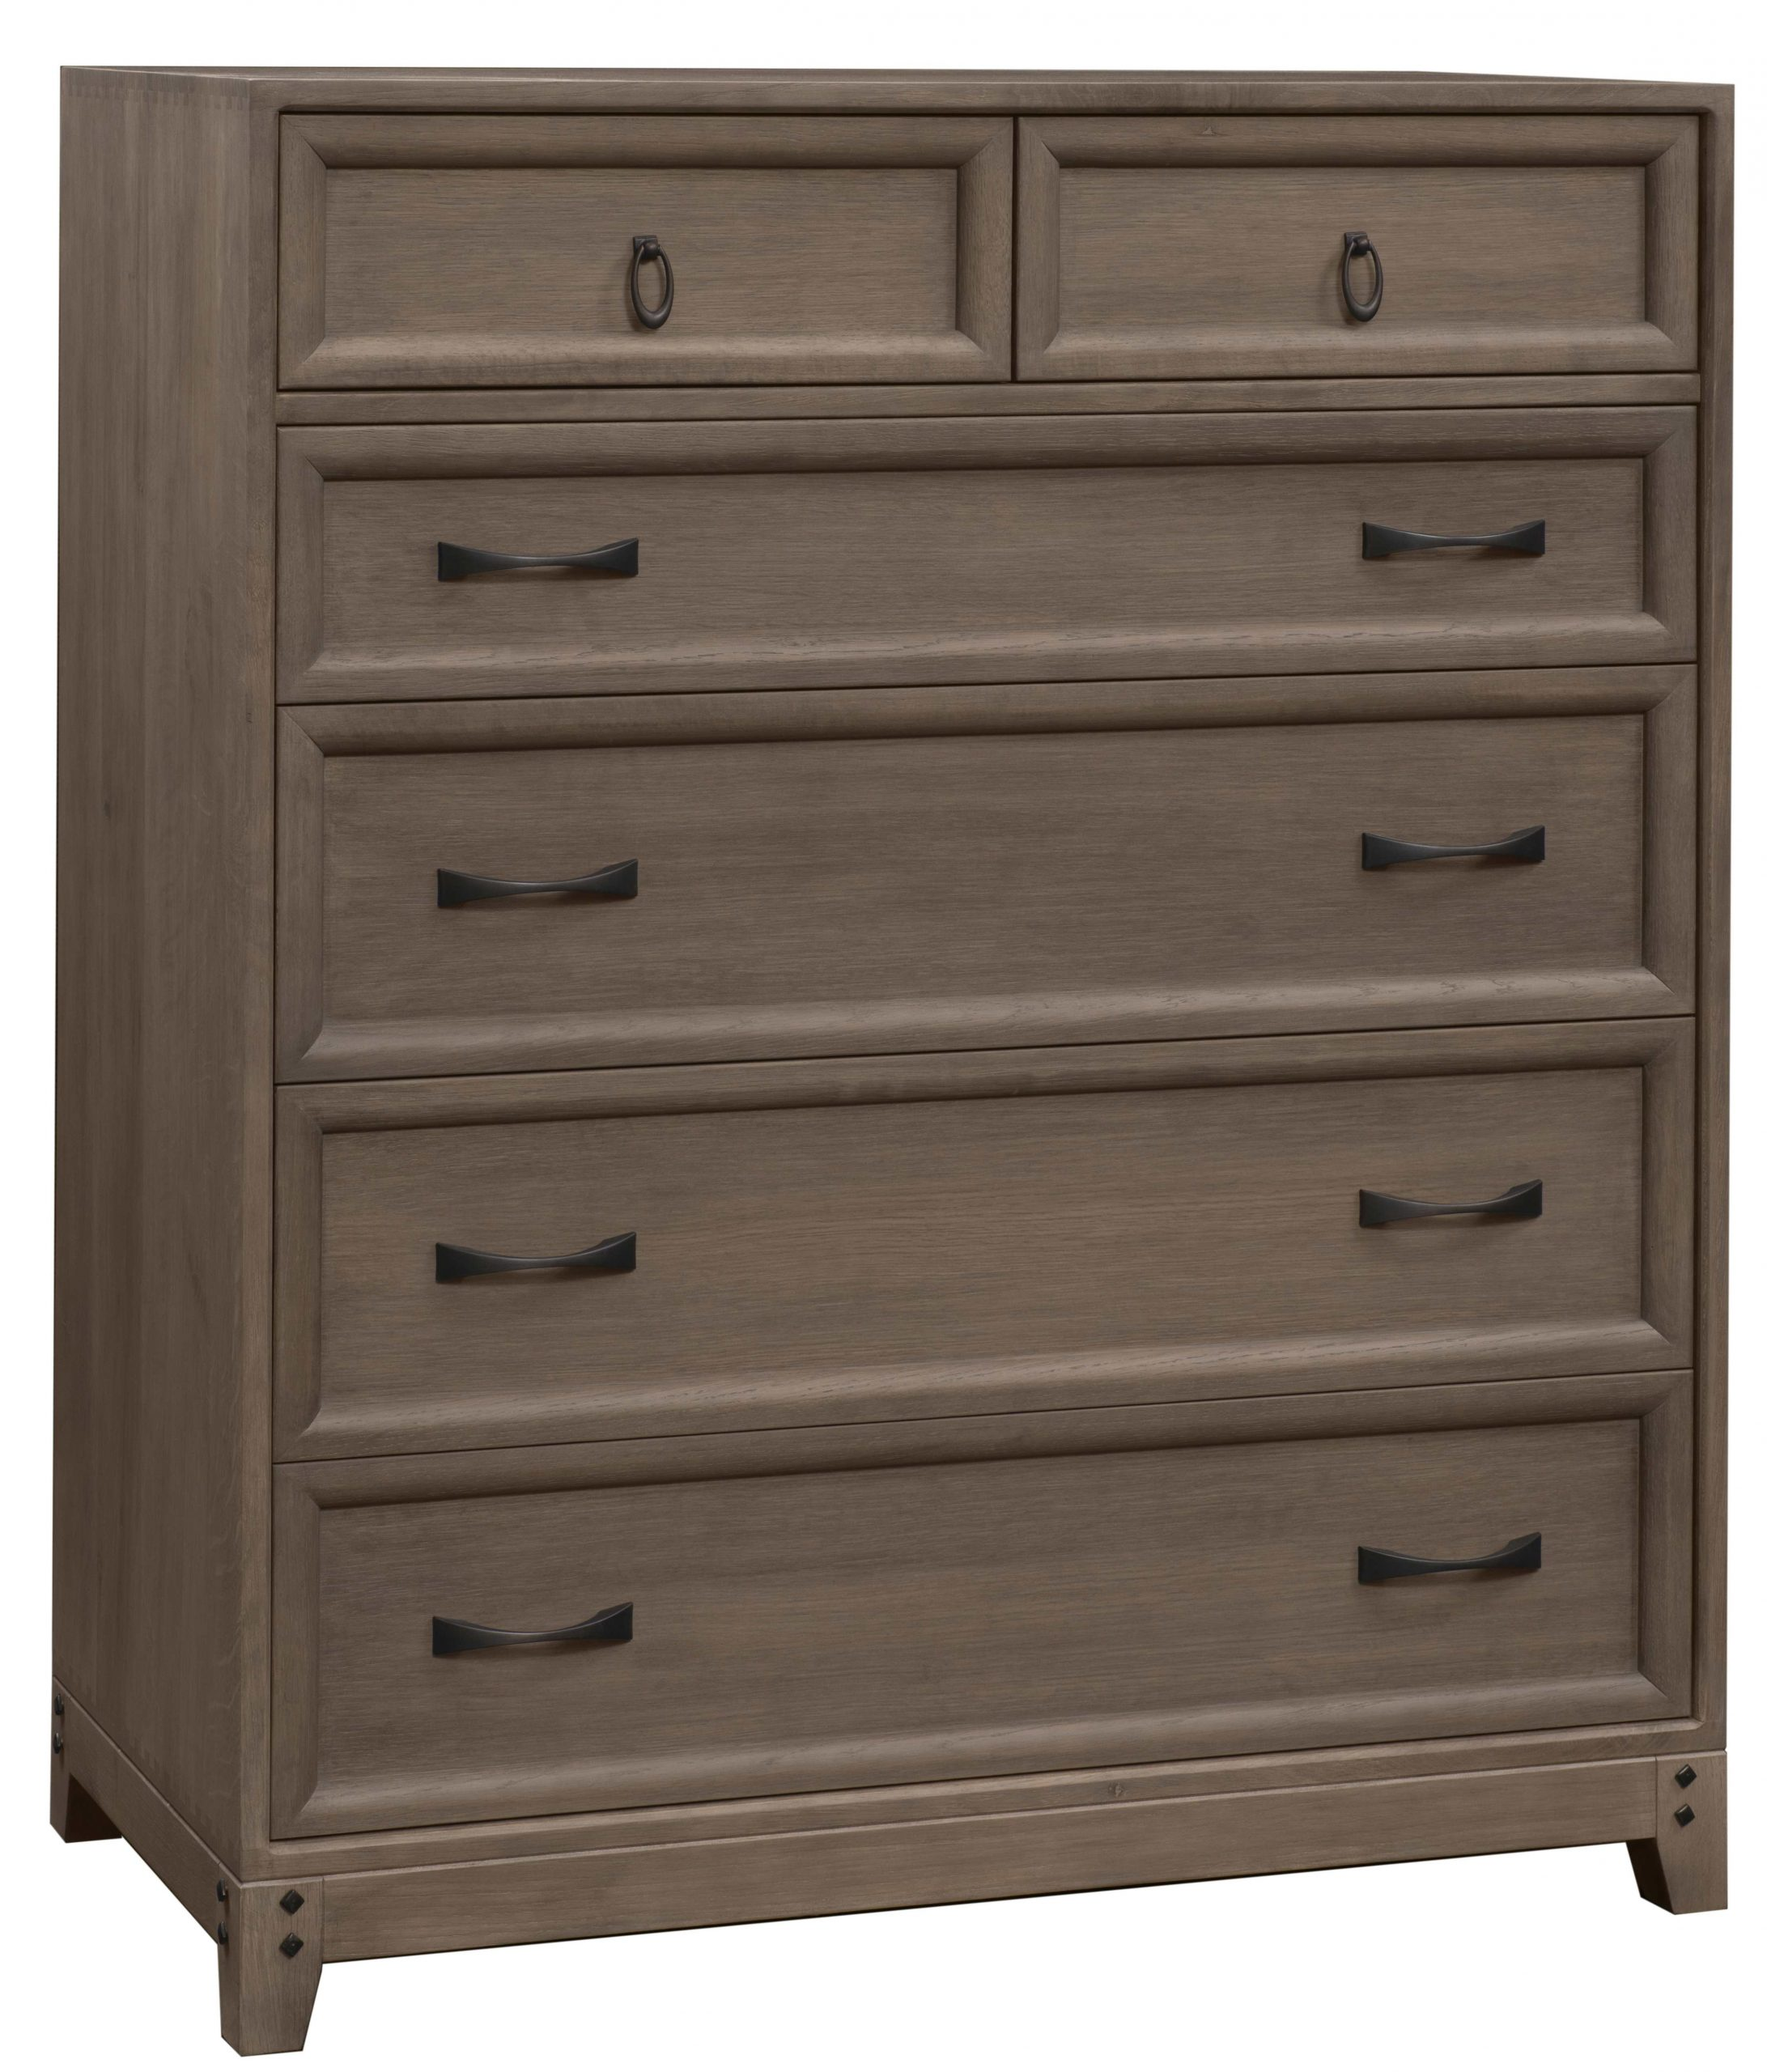 Glendale Chest of Drawers